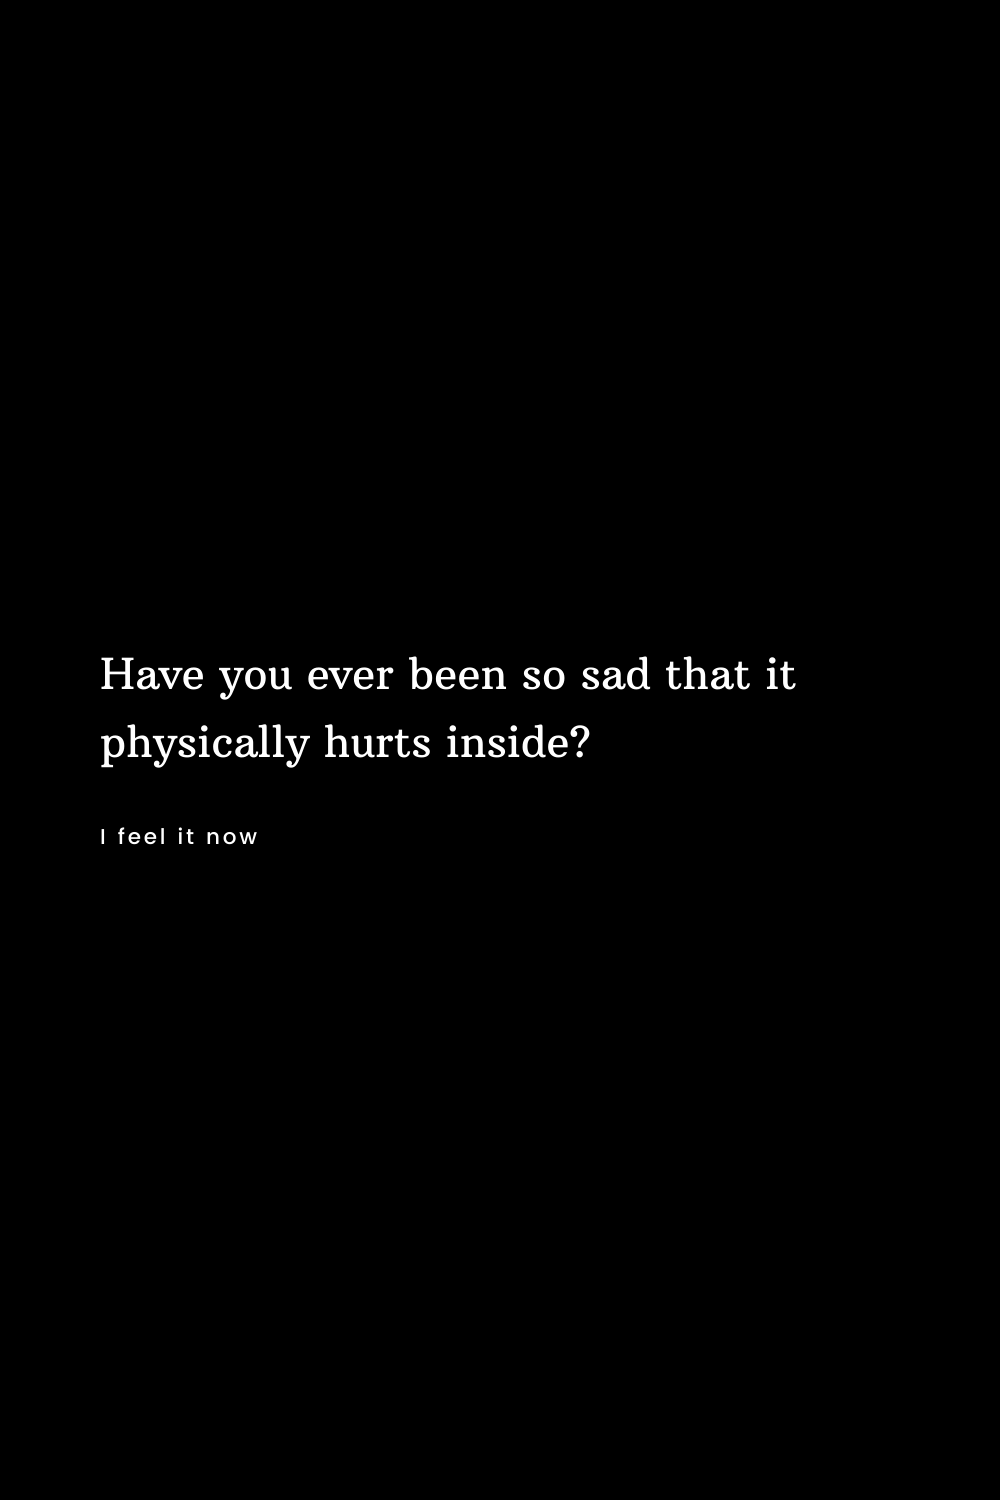 Have you ever been so sad that it physically hurts inside?